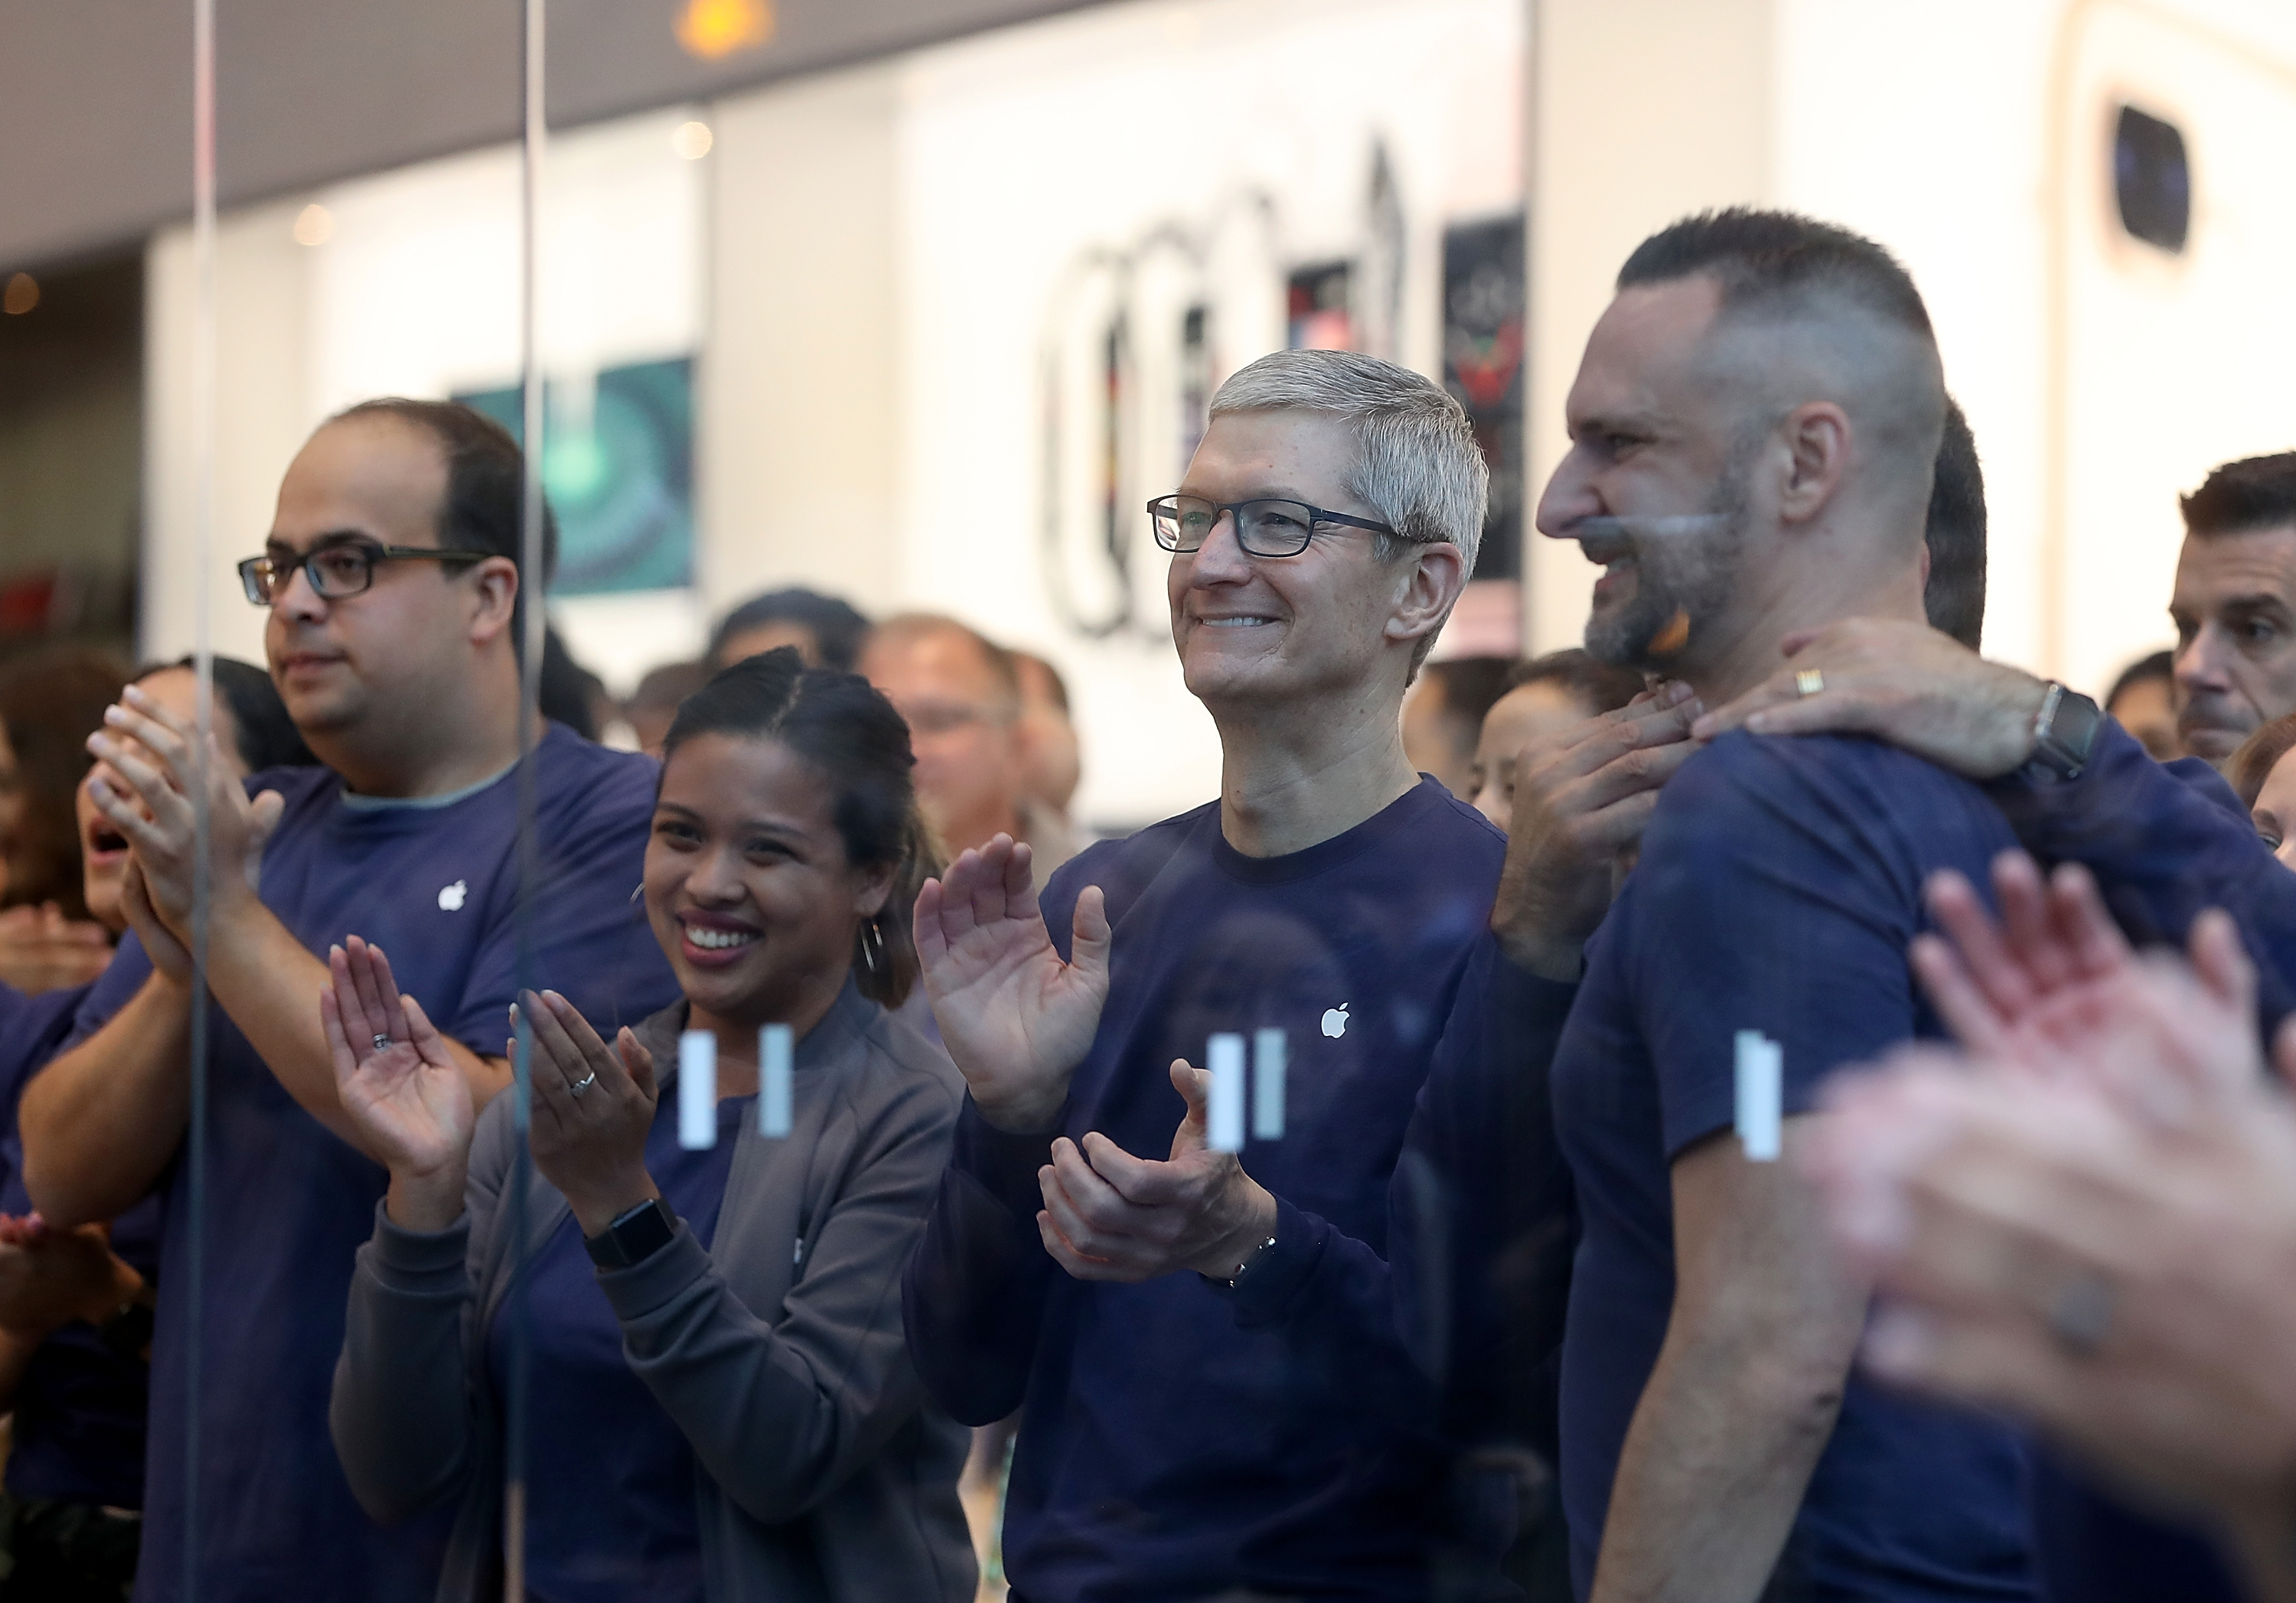 Apple CEO Tim Cook applauds at an Apple Store event